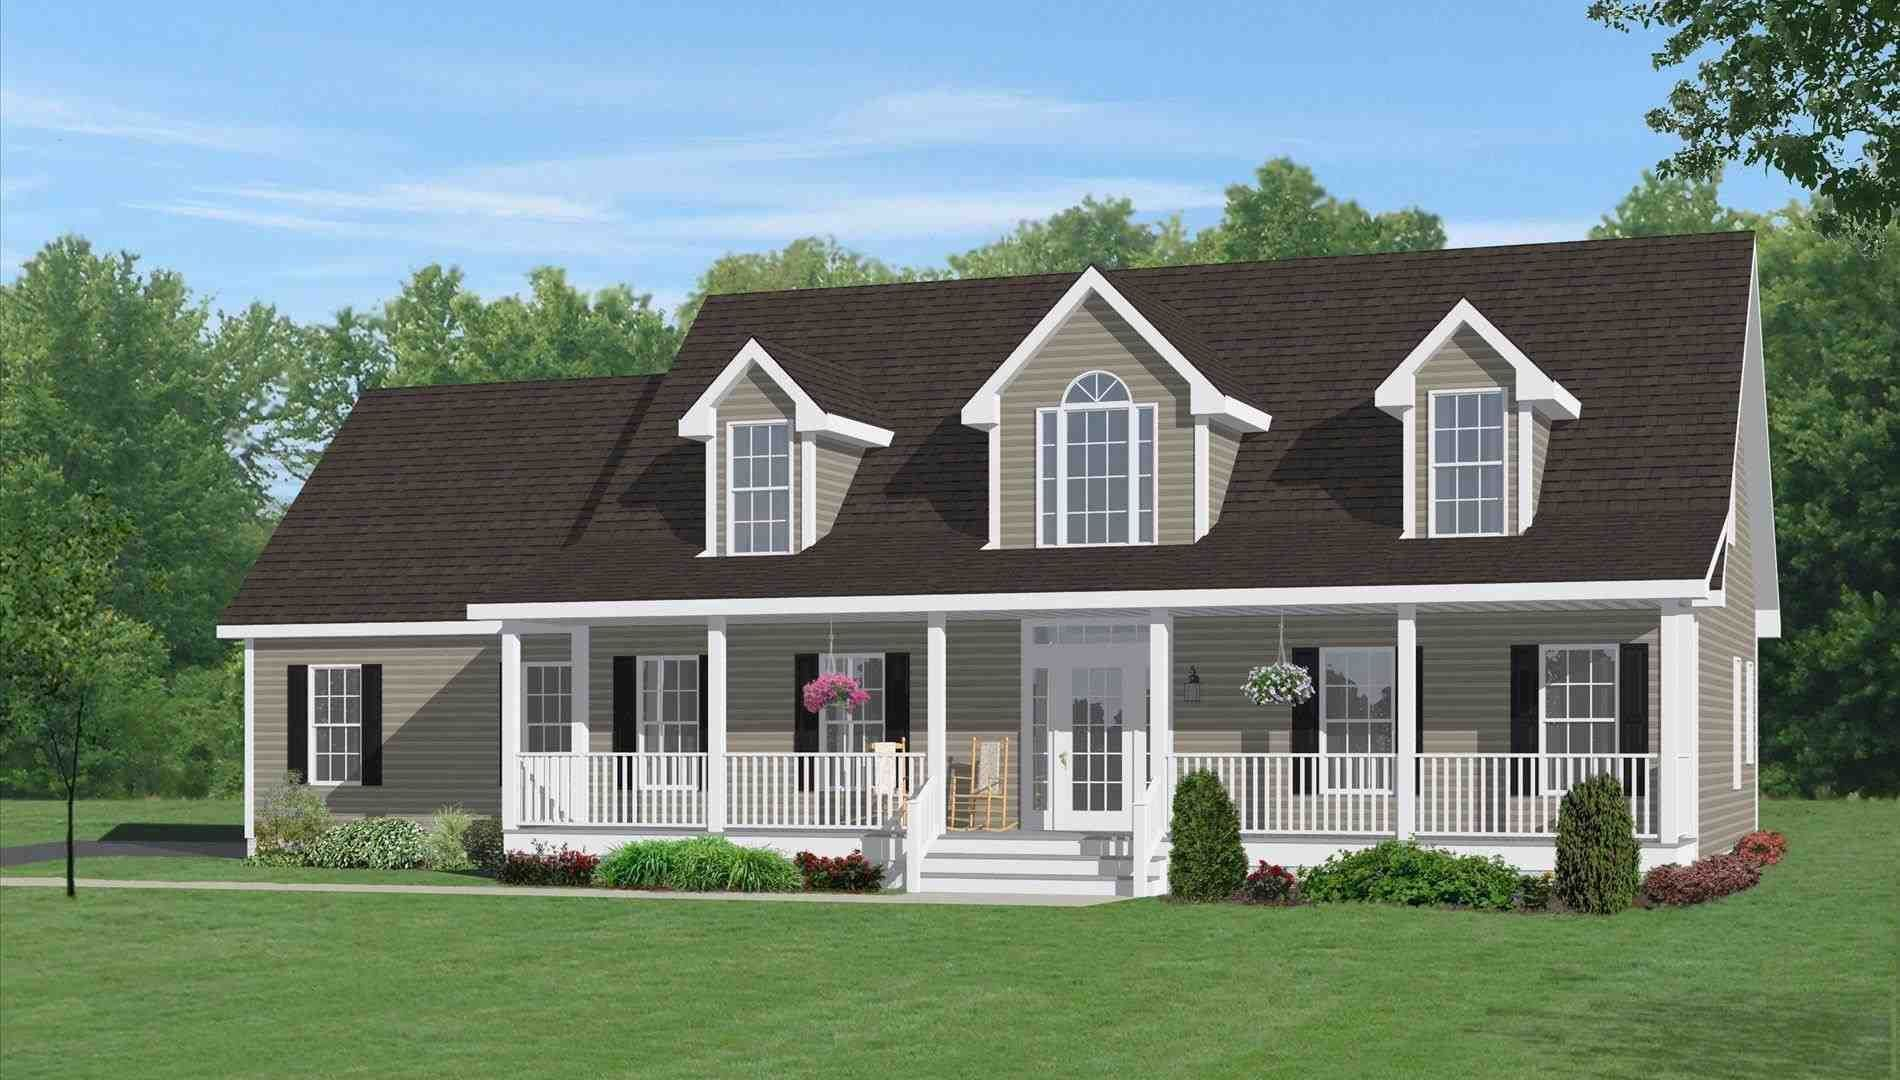 Farmhouse Ranch Exterior Luxury Farmhouse Ranch Exterior 22 Fresh Farmhouse Home Plans Farmhouse Style House Craftsman Style House Plans Farm Style House